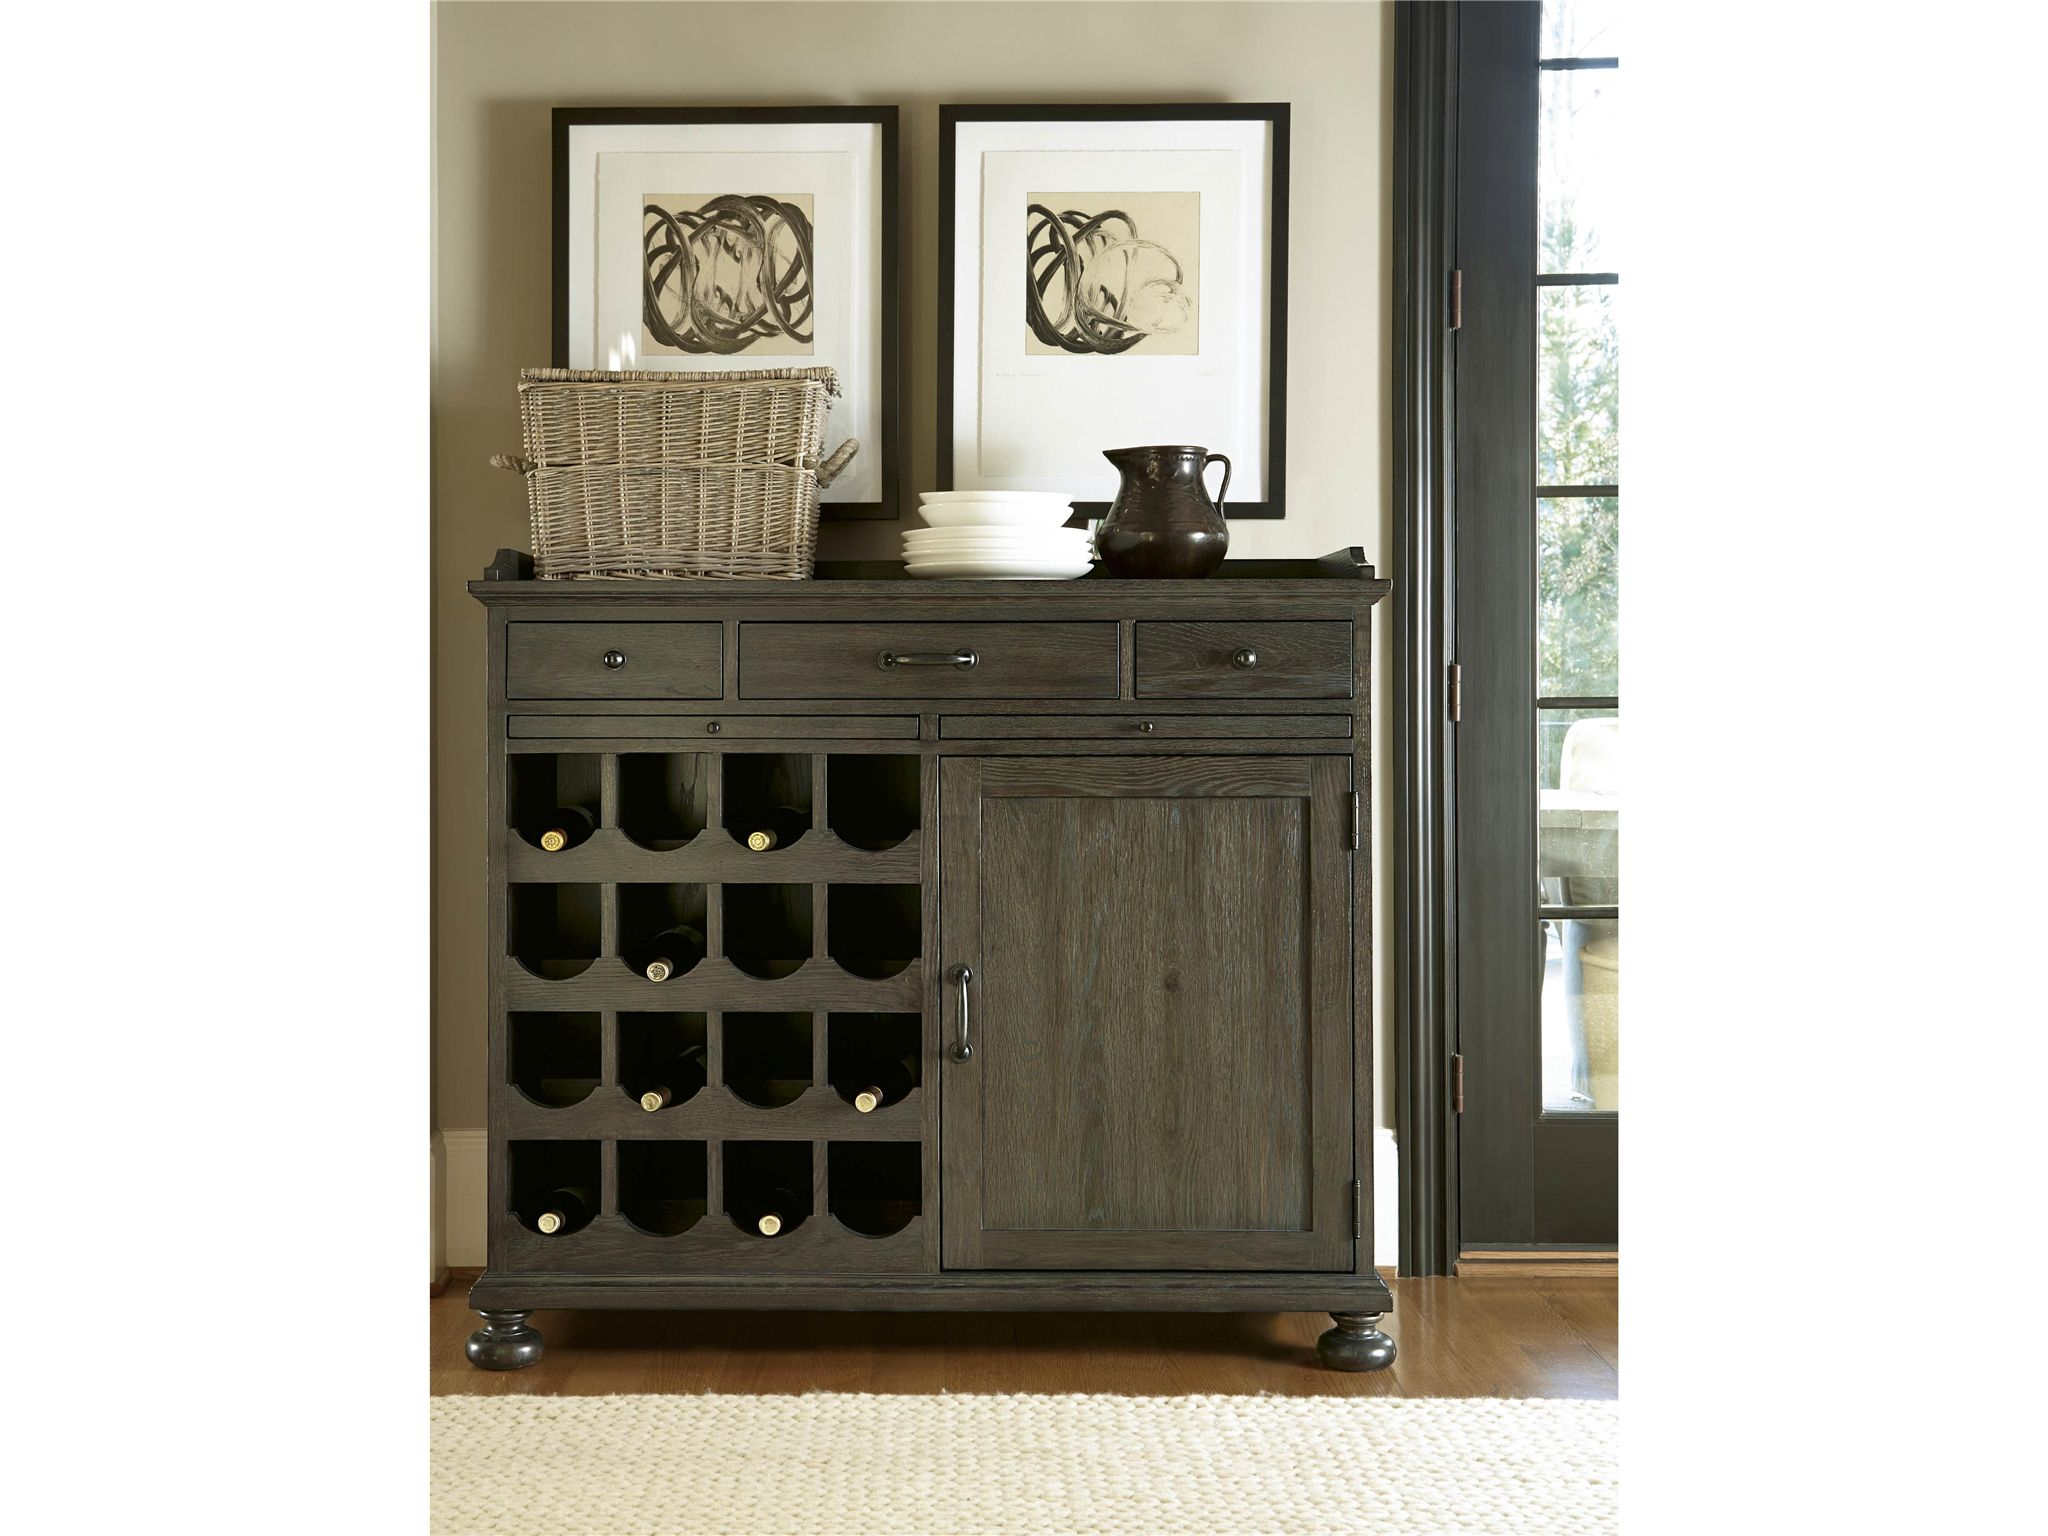 1000+ images about Great Rooms on Pinterest   Furniture, Side chairs and Wine  cabinets